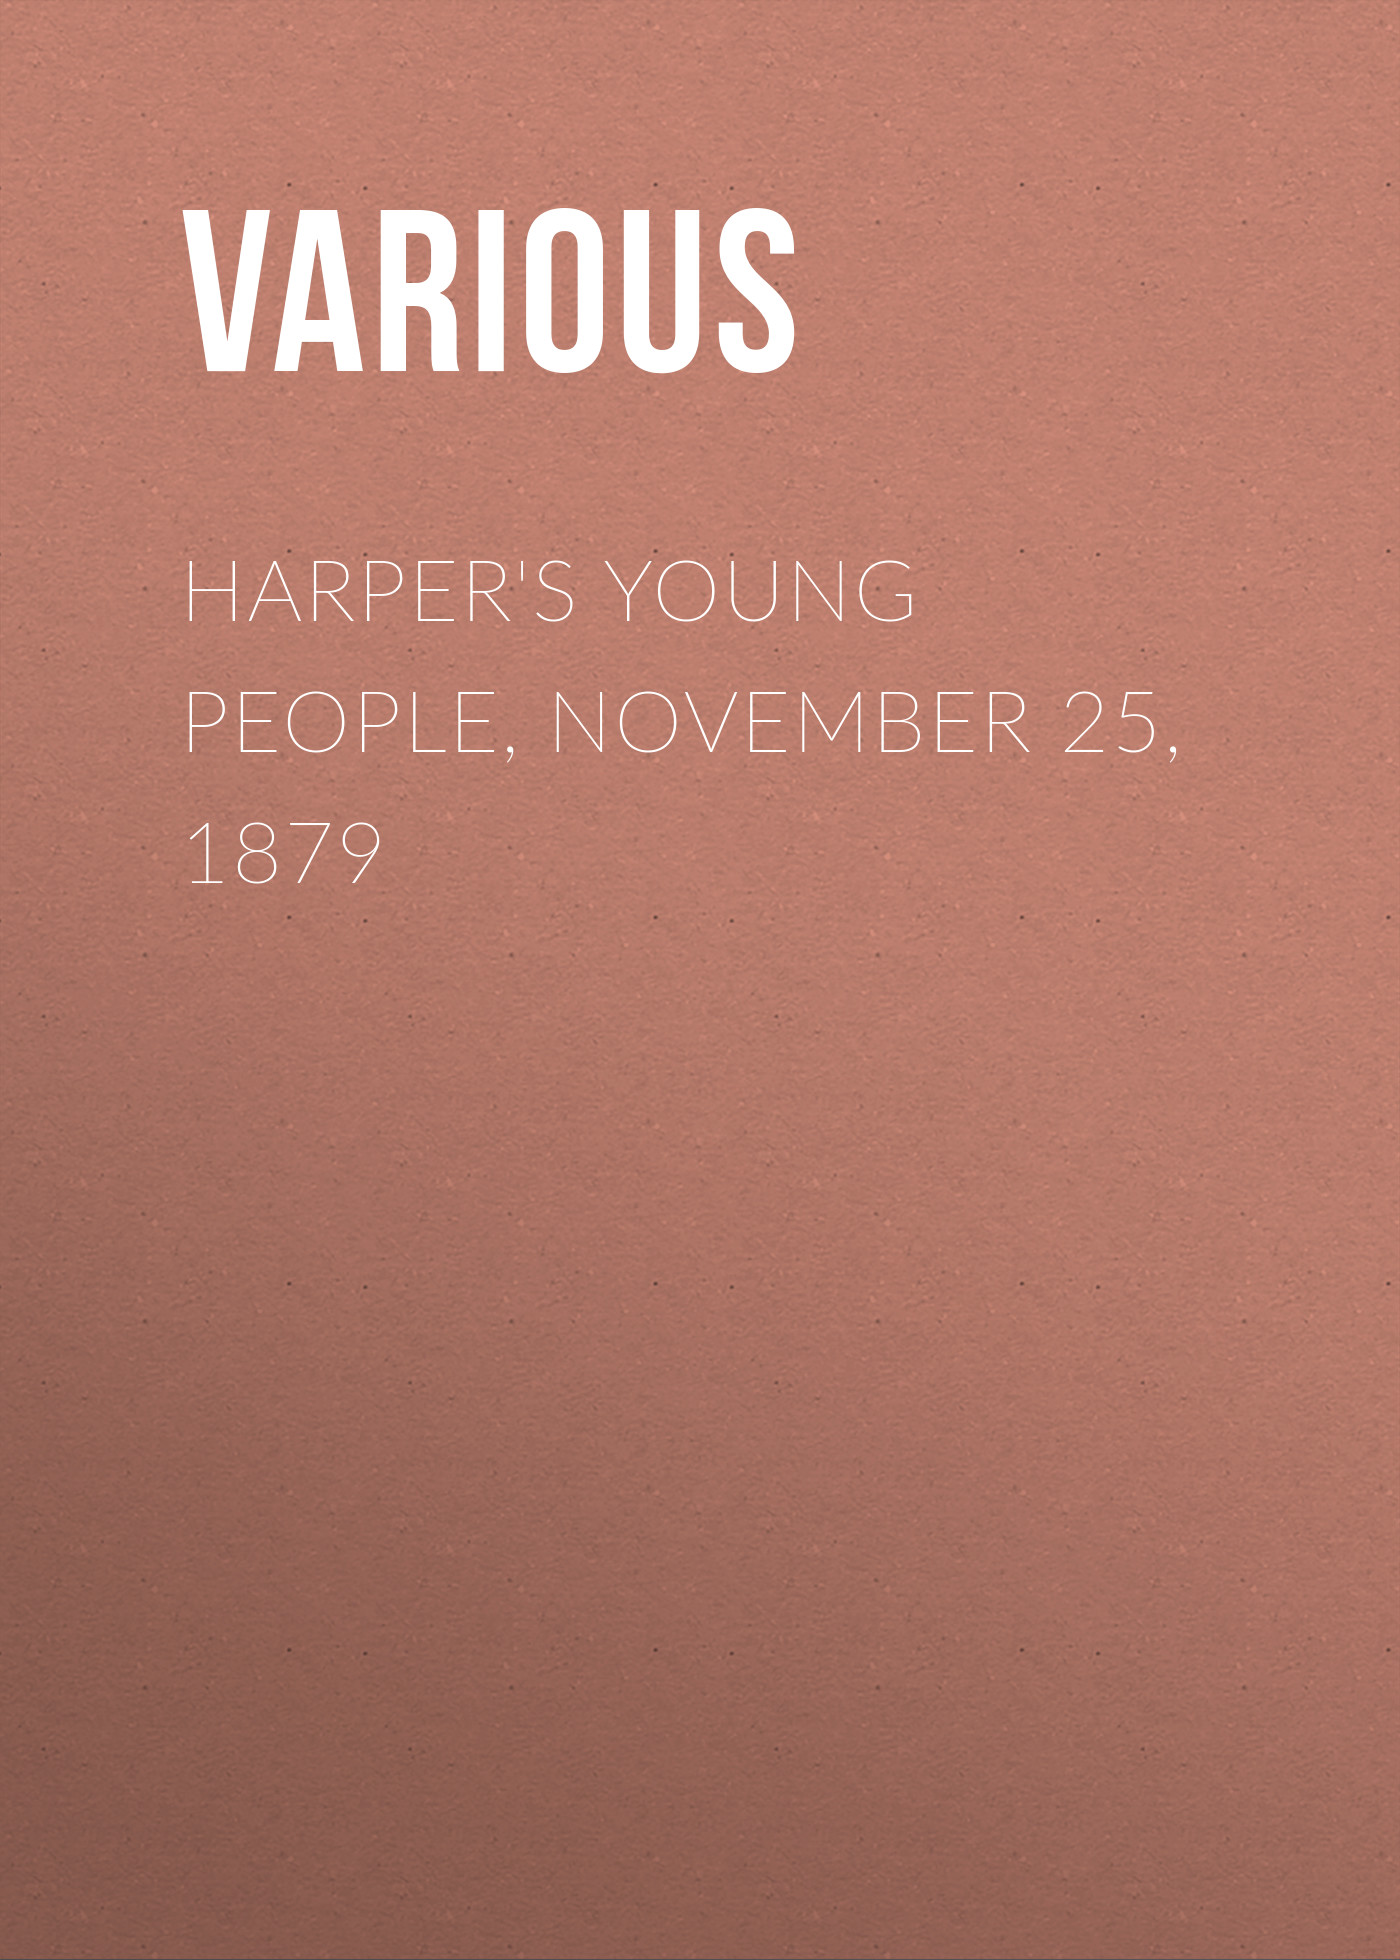 Harper\'s Young People, November 25, 1879 ( Various  )